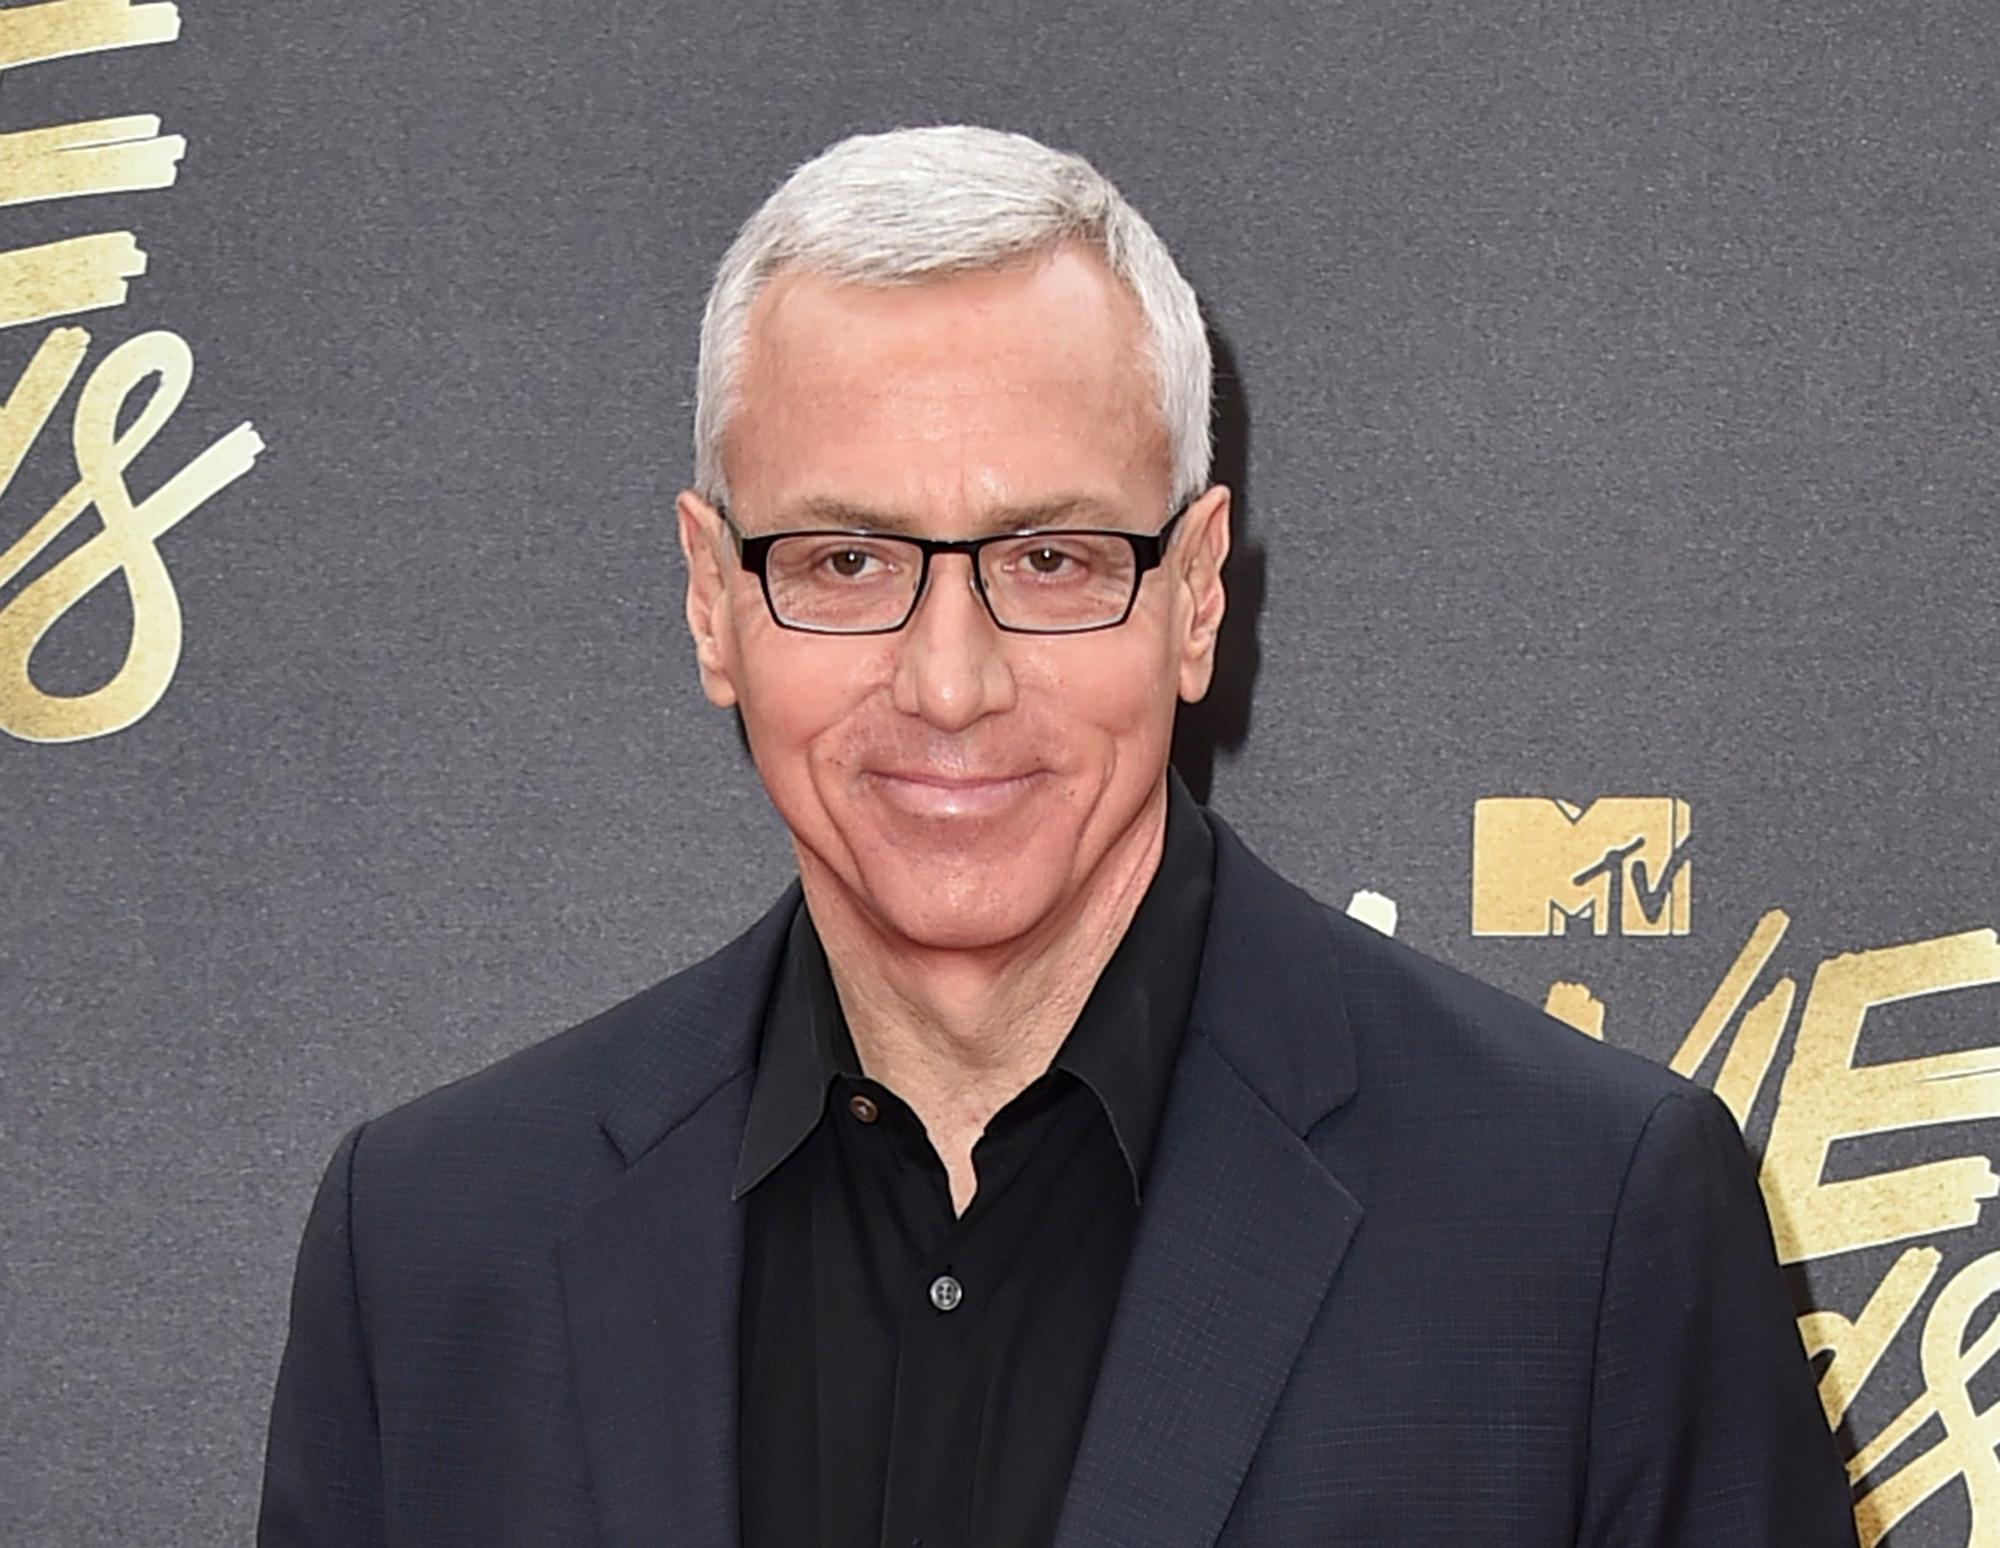 Dr. Drew says press should be 'held accountable' for coronavirus panic: 'They are hurting people'